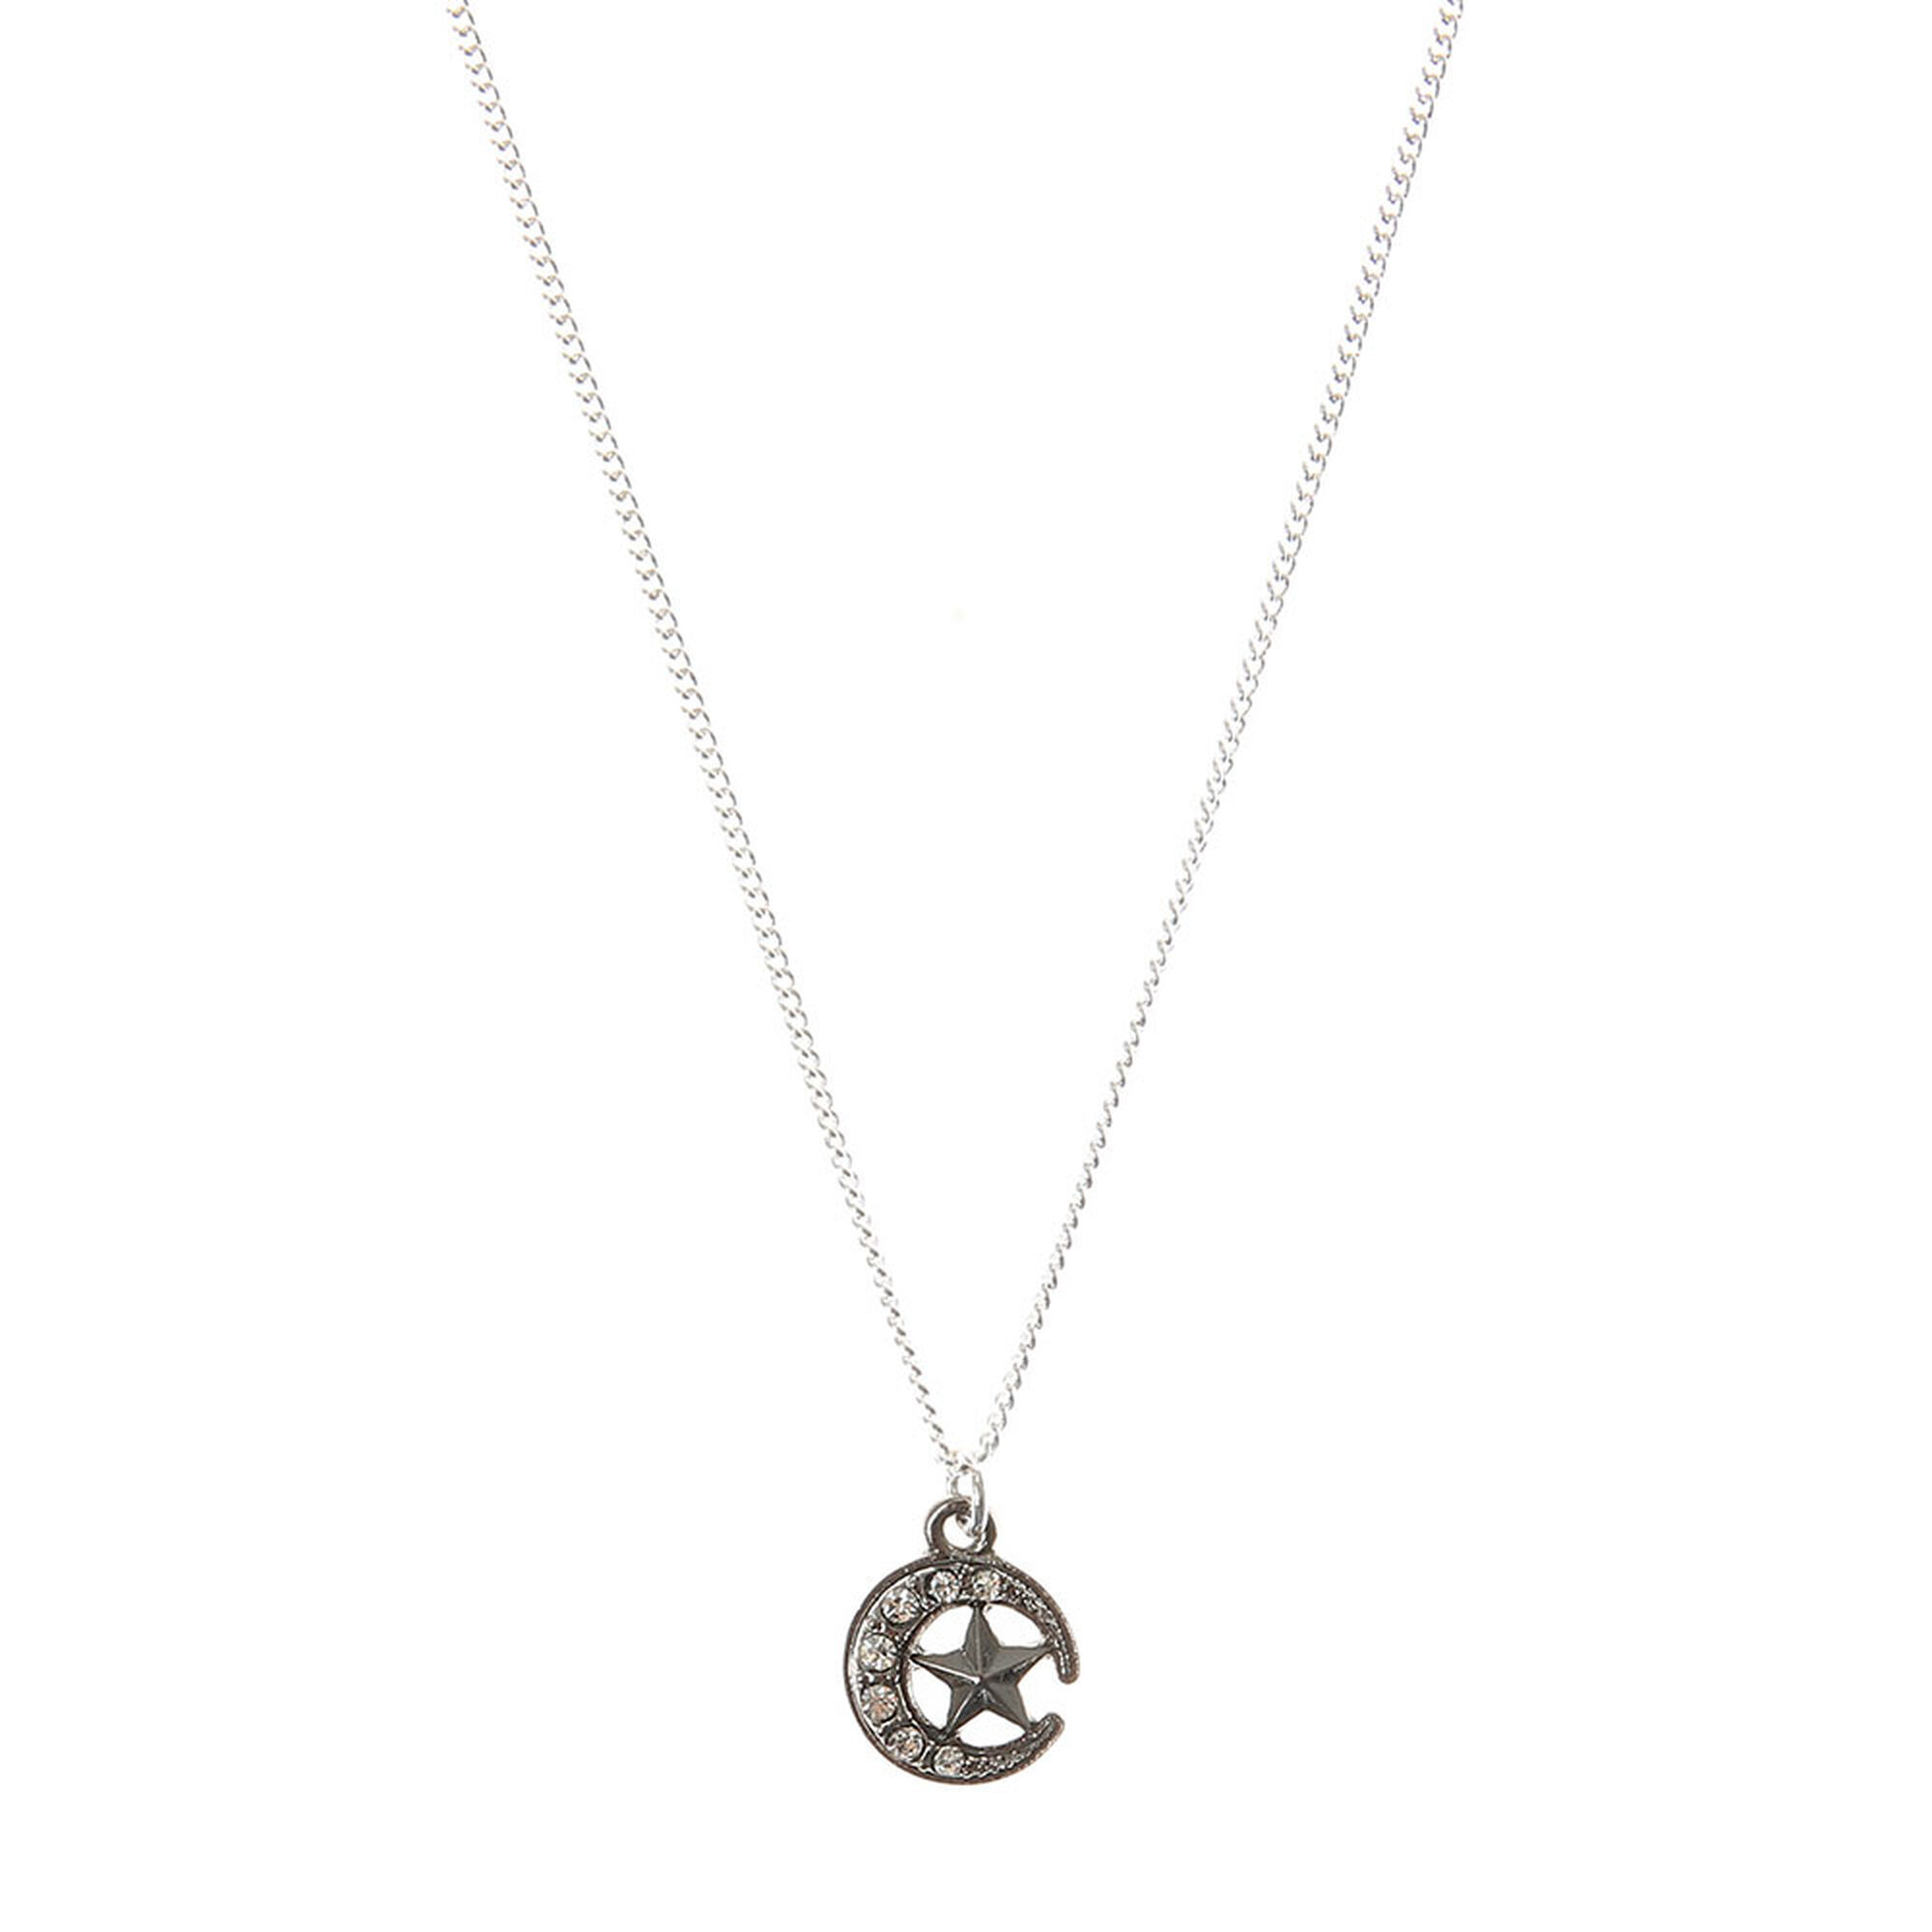 Moon and star pendant necklace claires us moon and star pendant necklace aloadofball Images